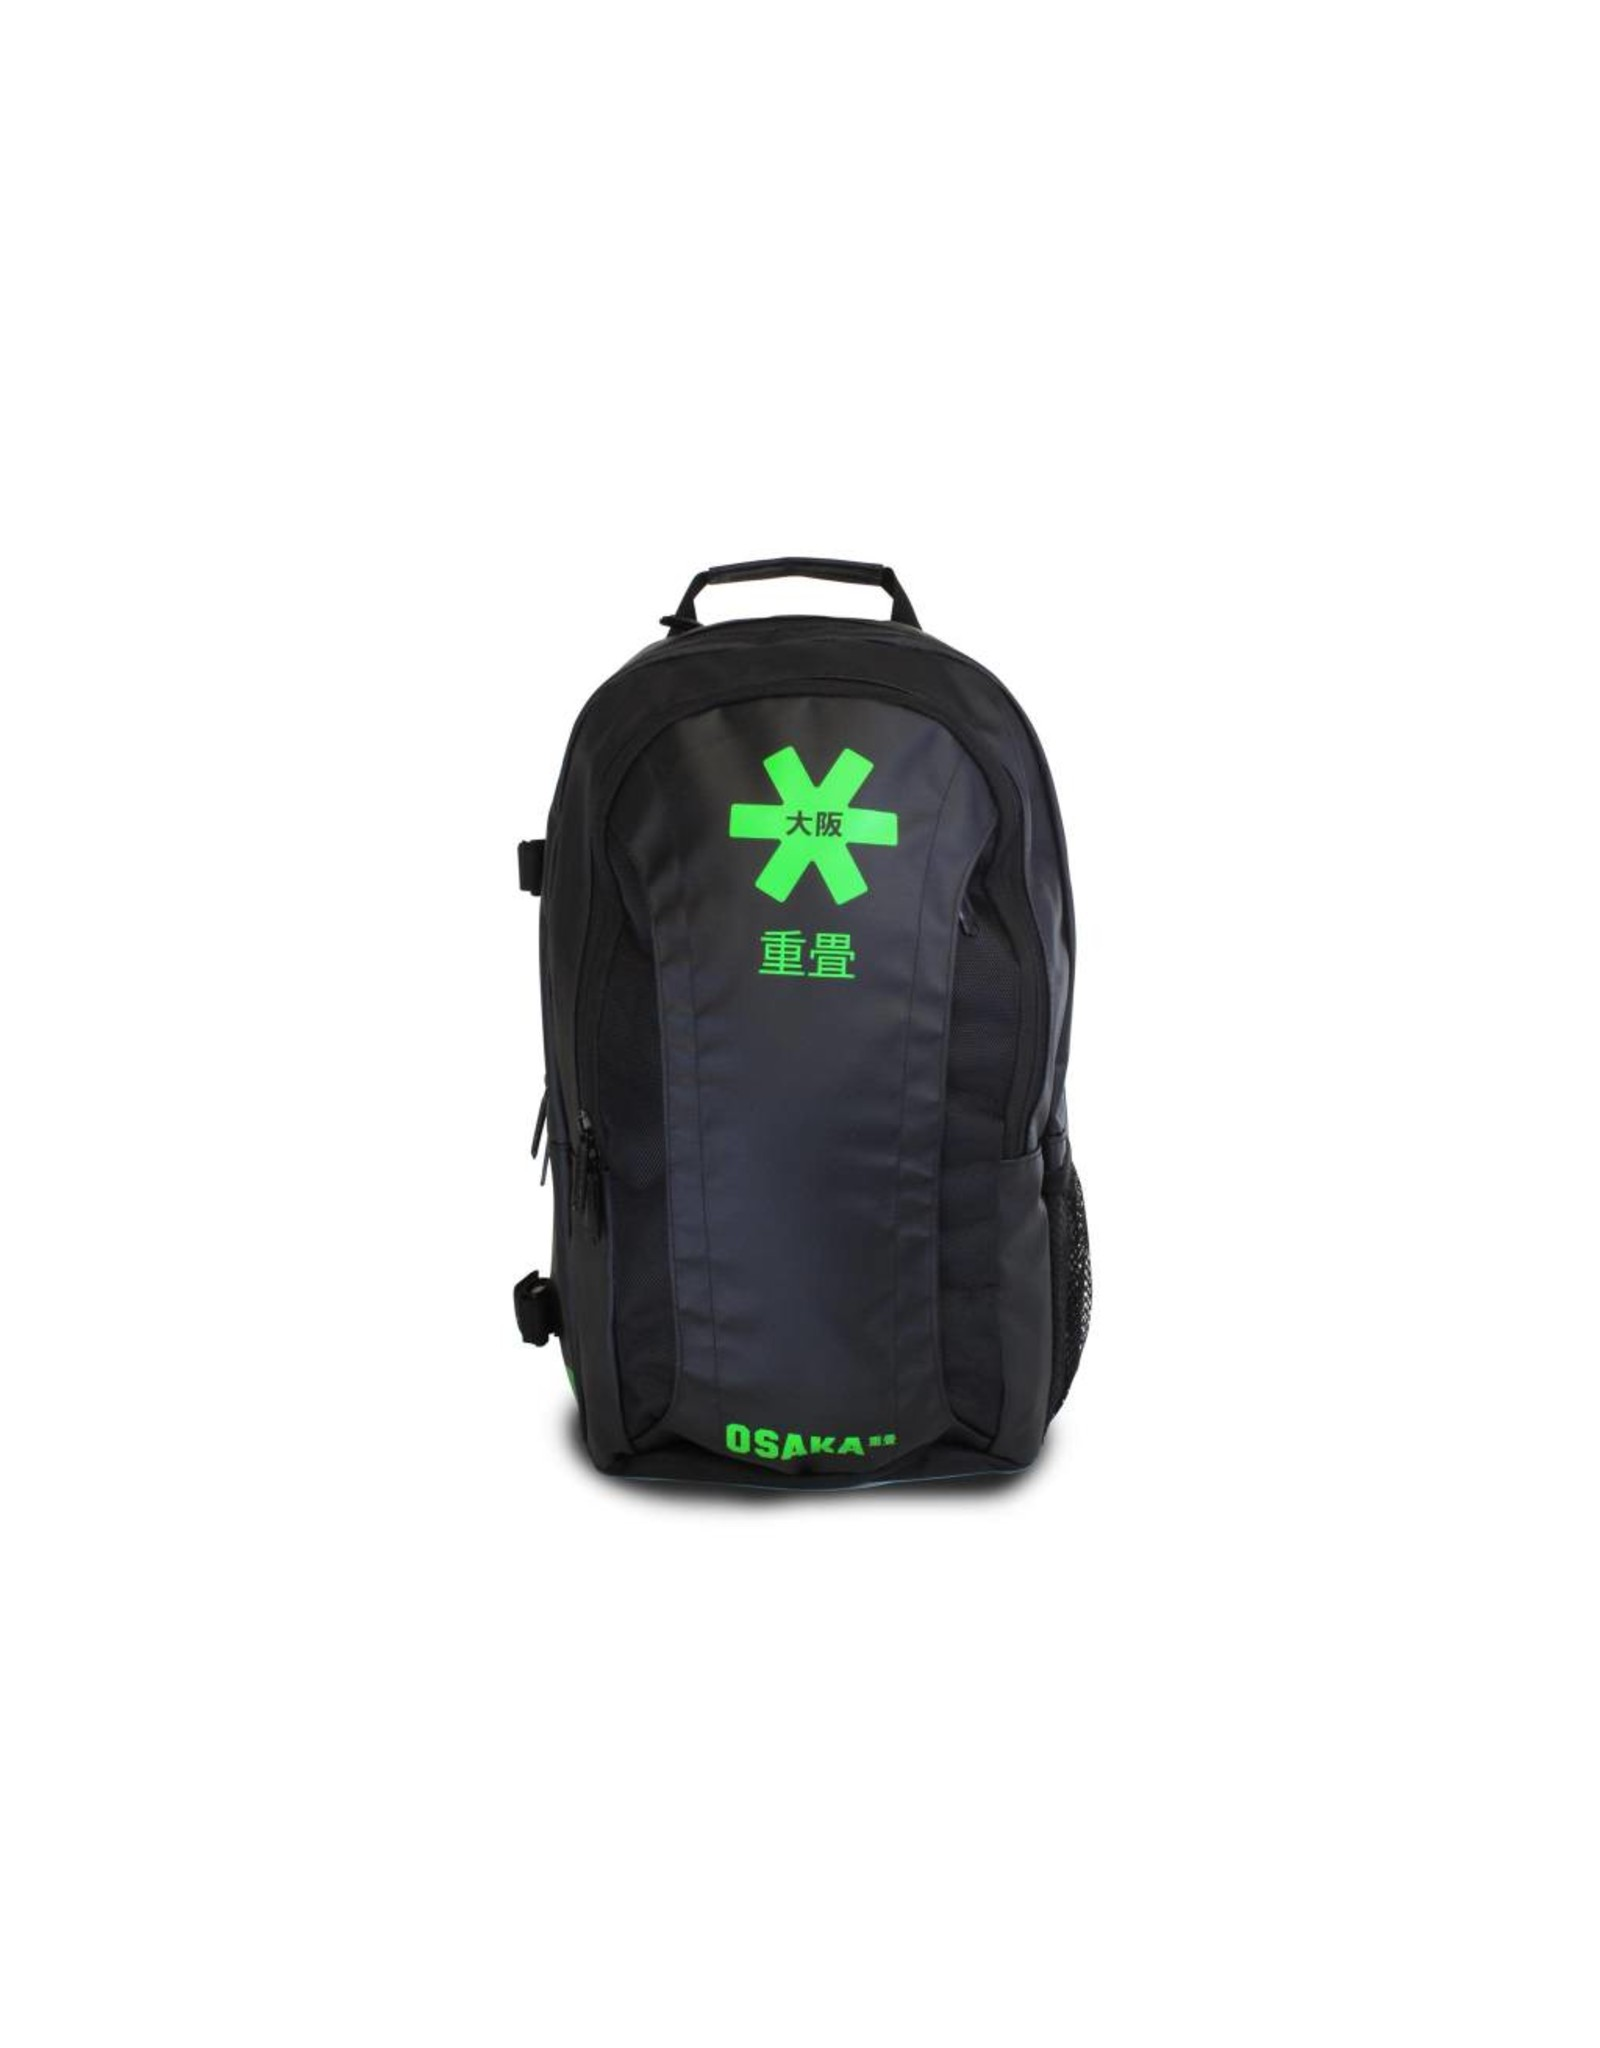 OSAKA OSAKA BACKPACK LARGE 18/19 BLACK